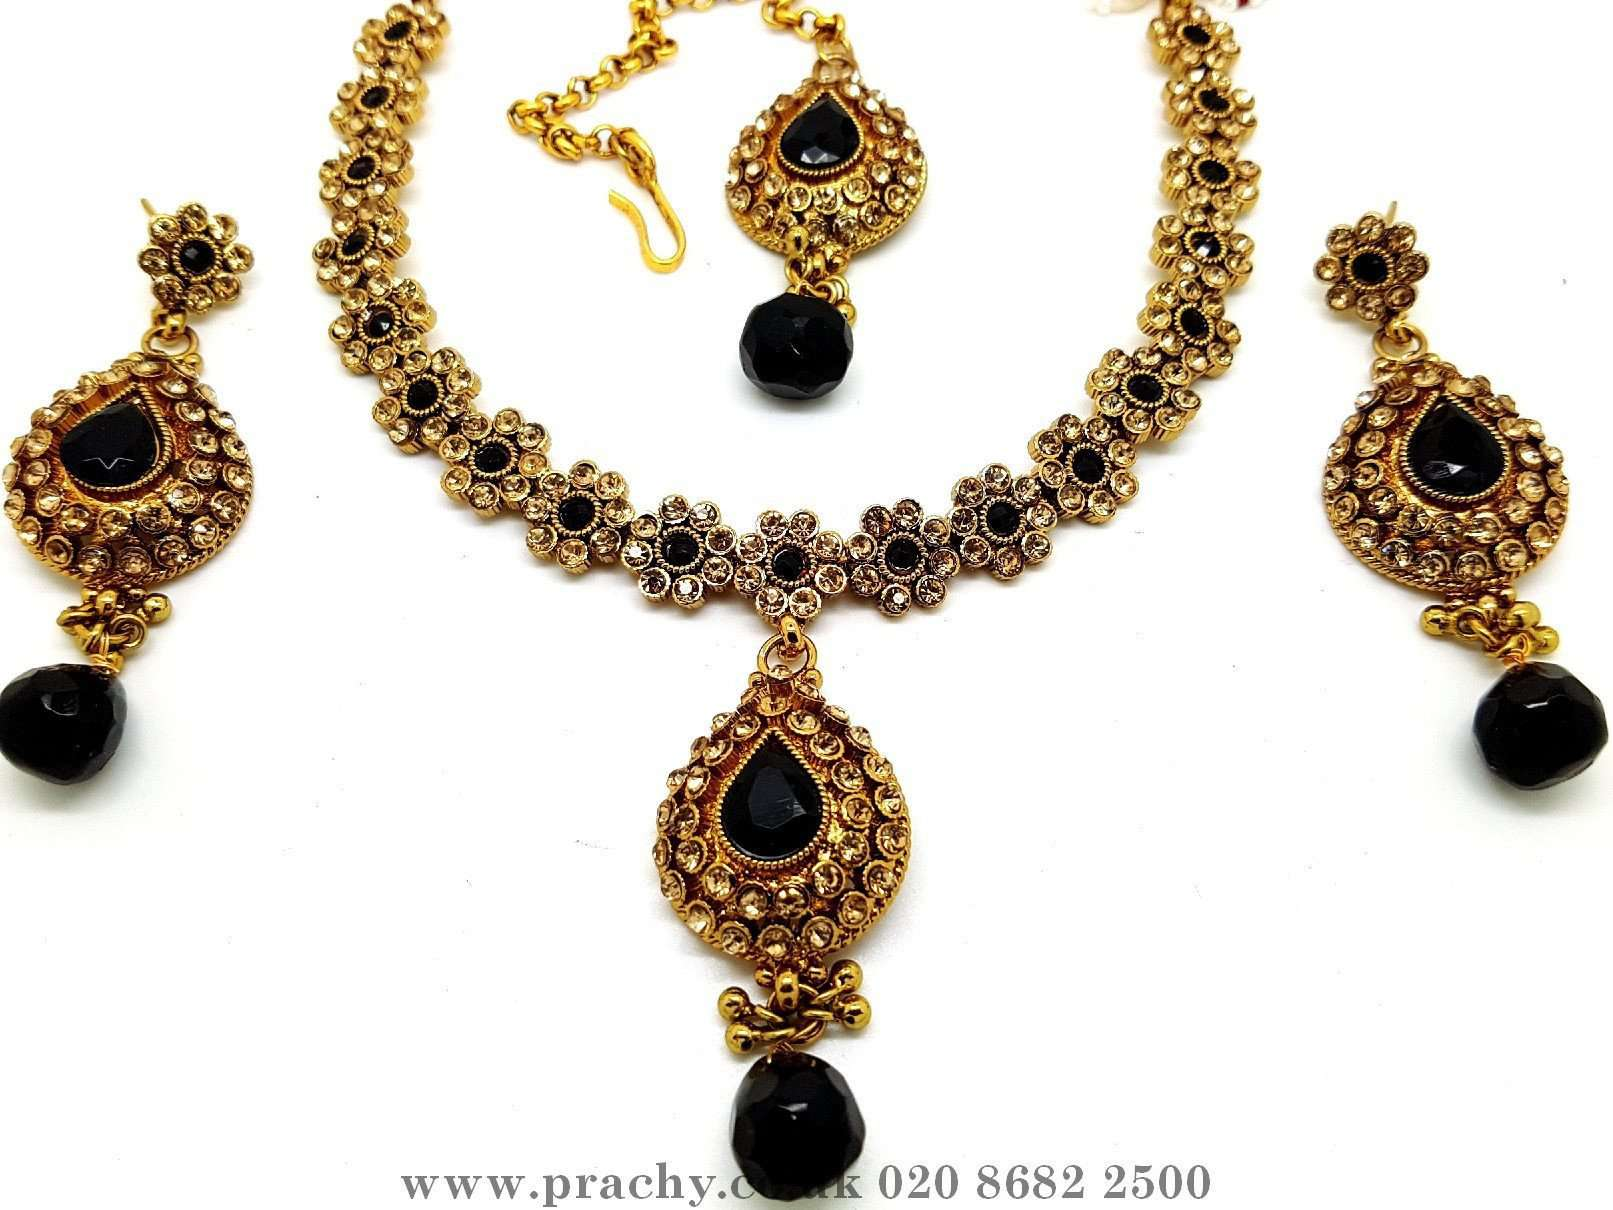 Prachy Creations : Soni 146 a - A classy Indian fashion jewellery set - 12 colours available, Bollywood,weddings, Black